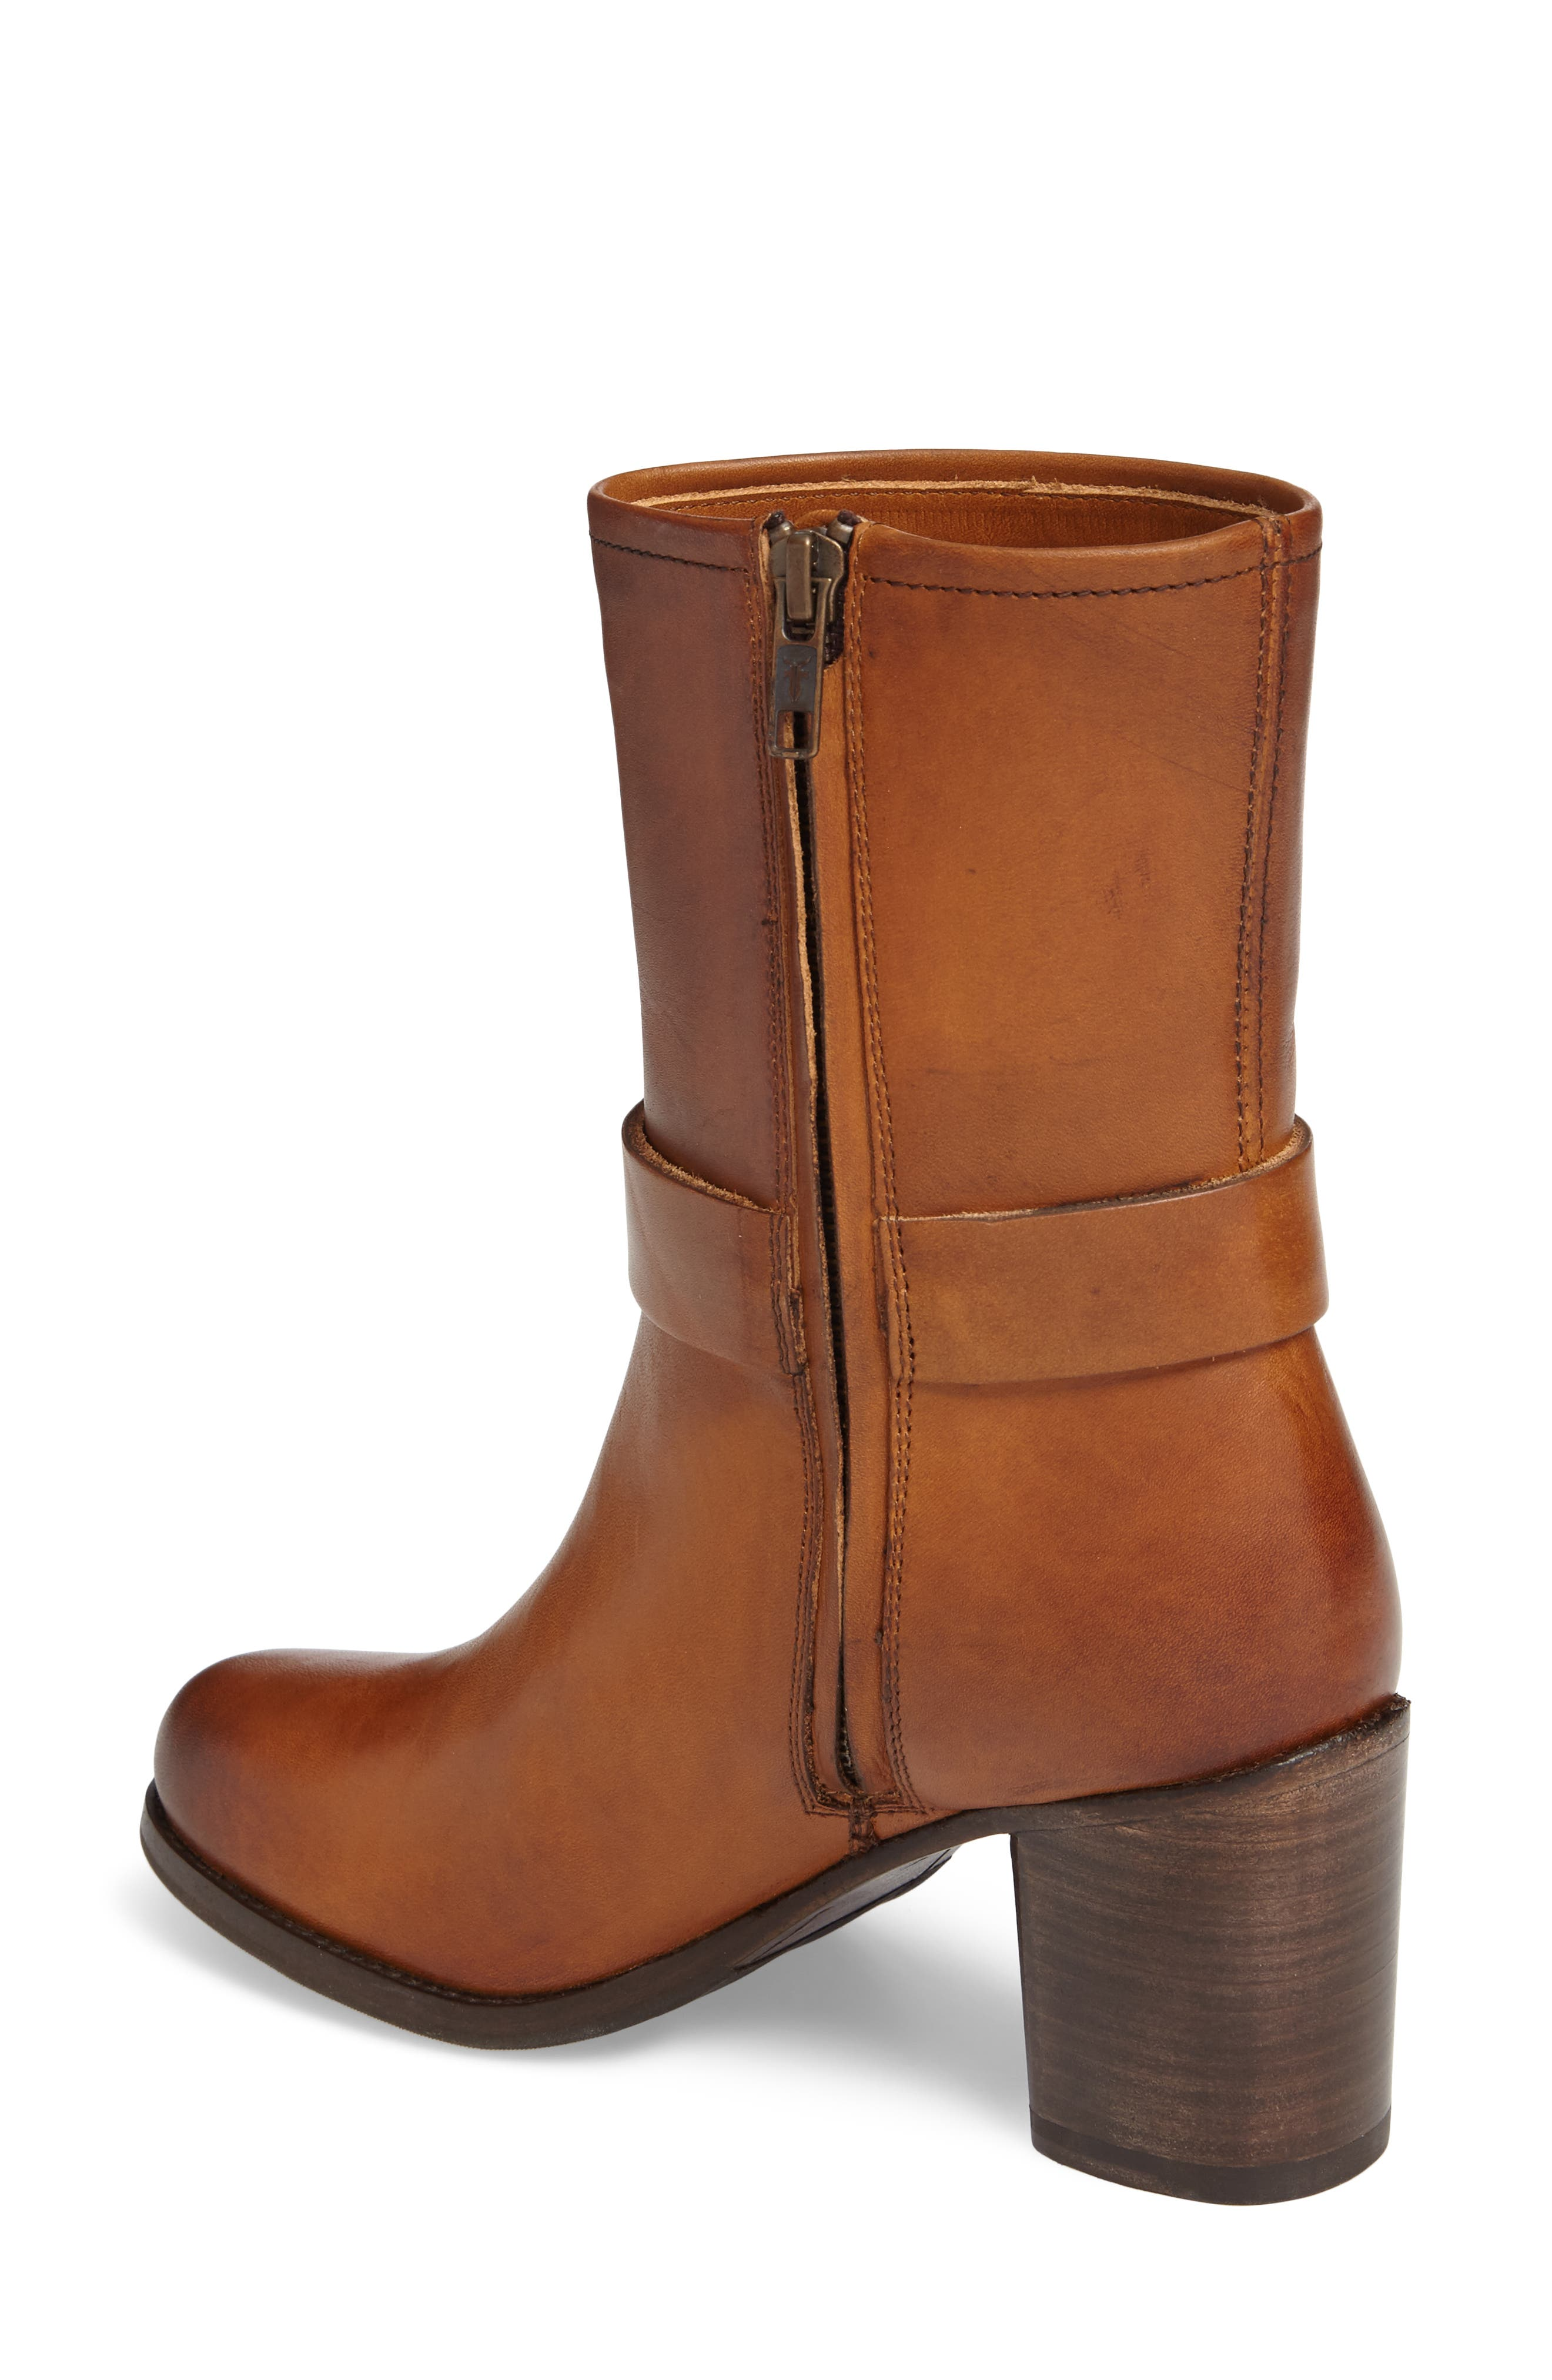 Addie Harness Boot,                             Alternate thumbnail 2, color,                             Brown